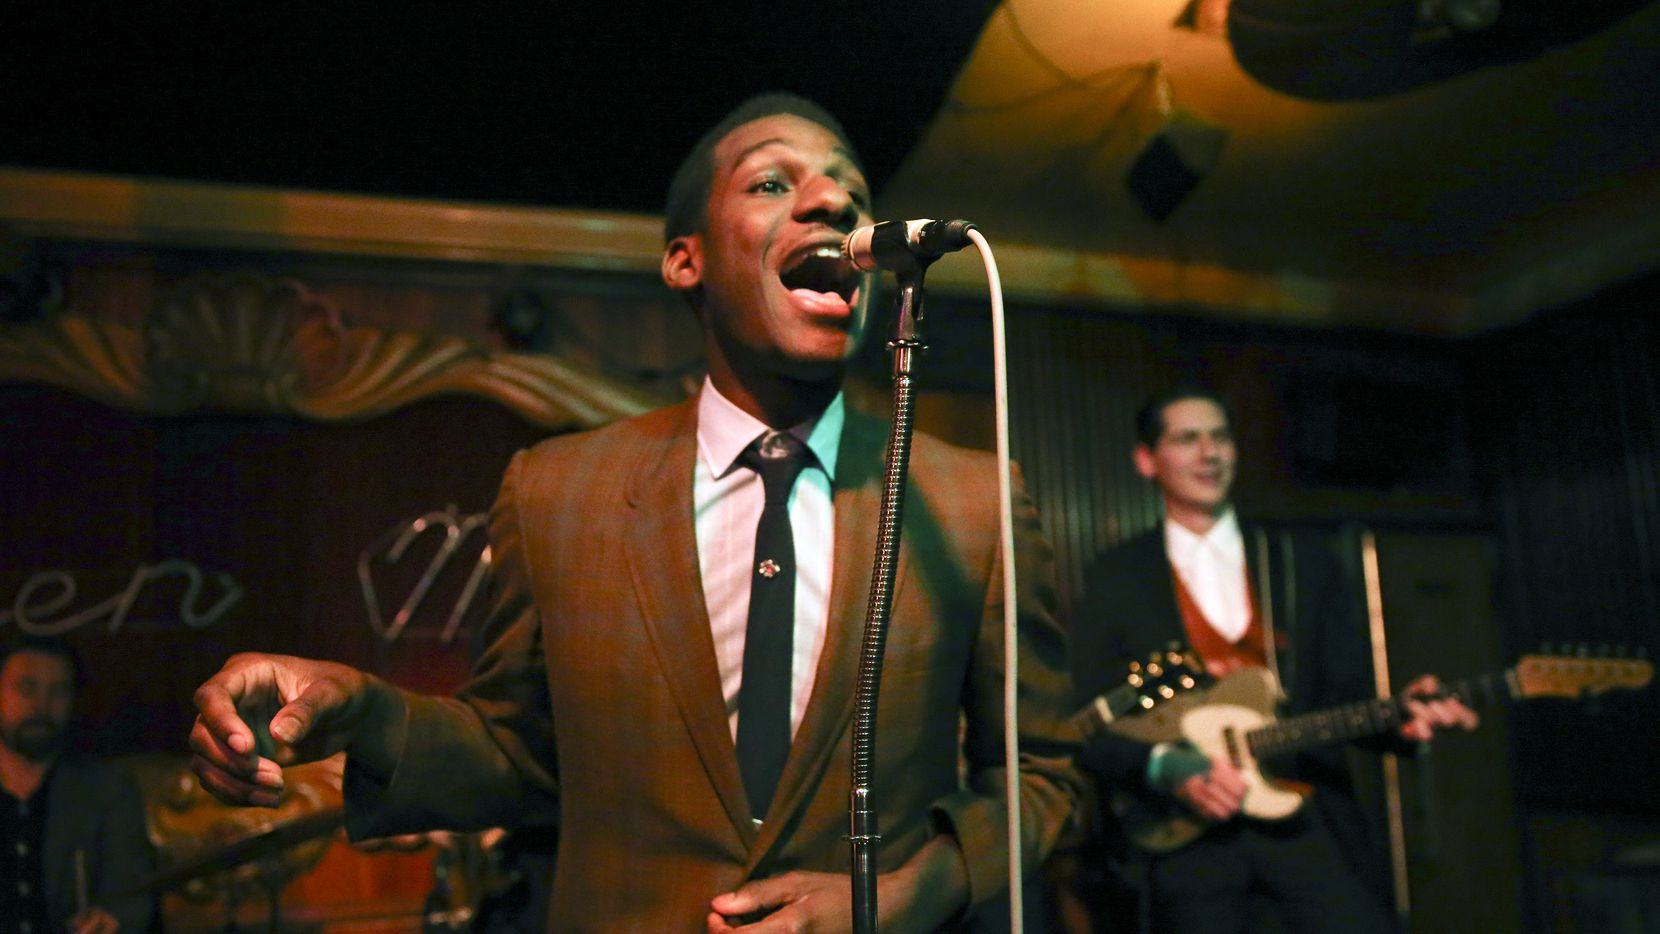 Leon Bridges performed at Chicago's Green Mill Jazz Club in April. The Fort Worth singer will be at the Majestic on Nov. 14. (Nuccio DiNuzzo/Chicago Tribune/TNS)